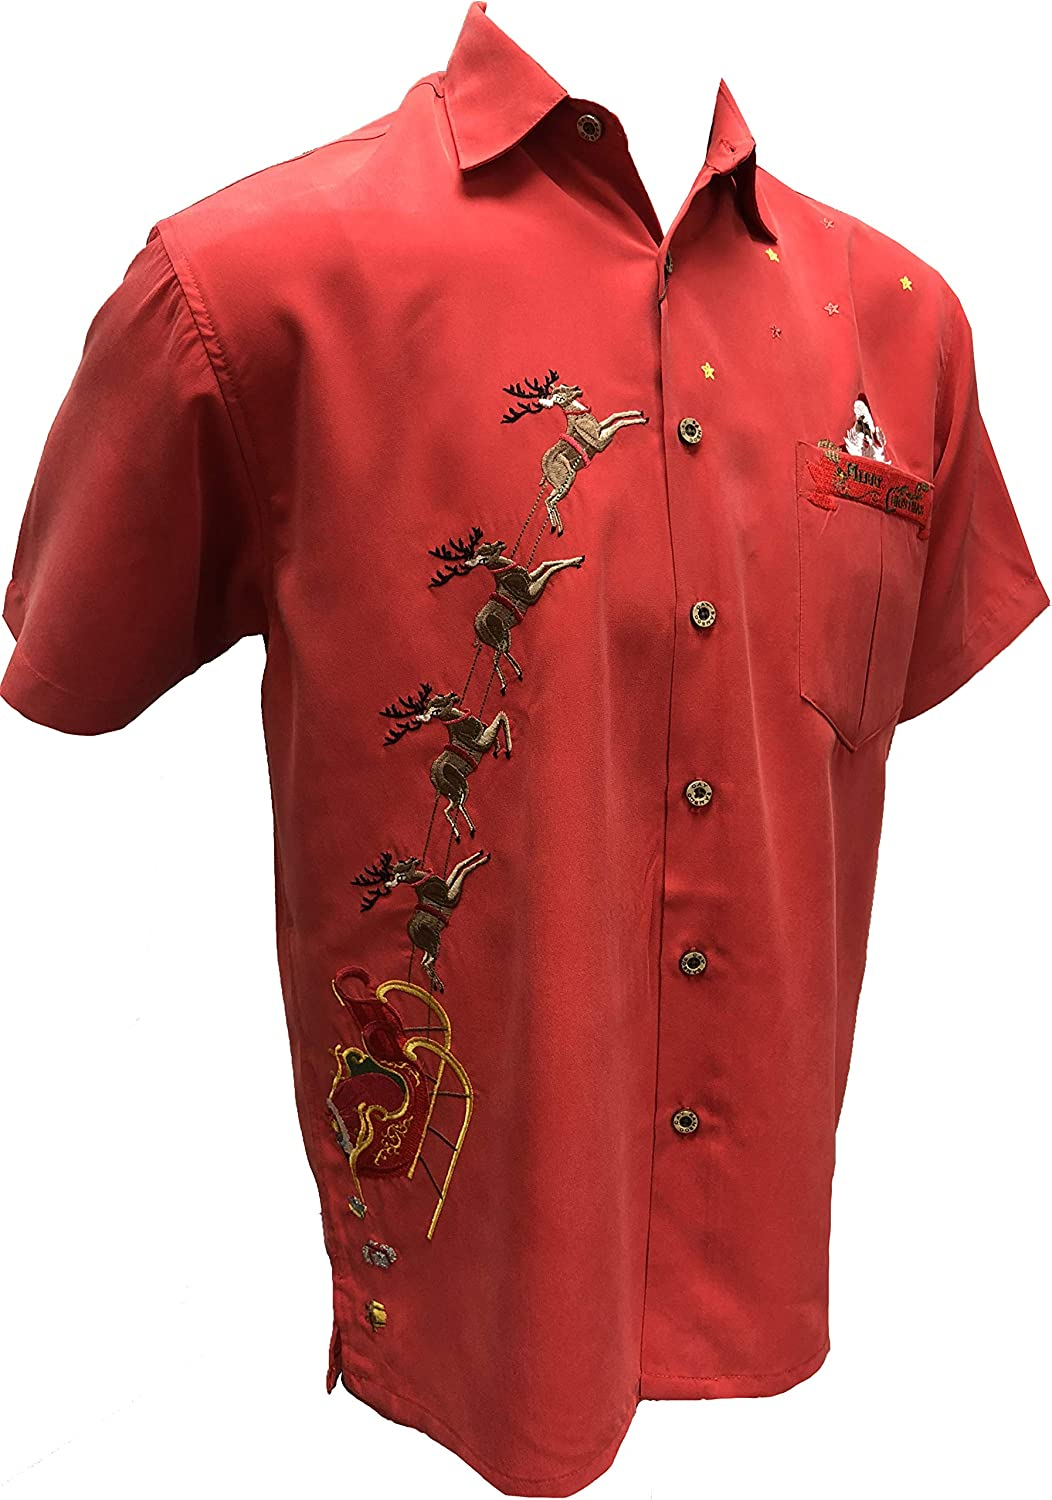 Many popular brands Bamboo Cay Men's Our shop most popular Embroidered Peekaboo Santa Button Christma Down